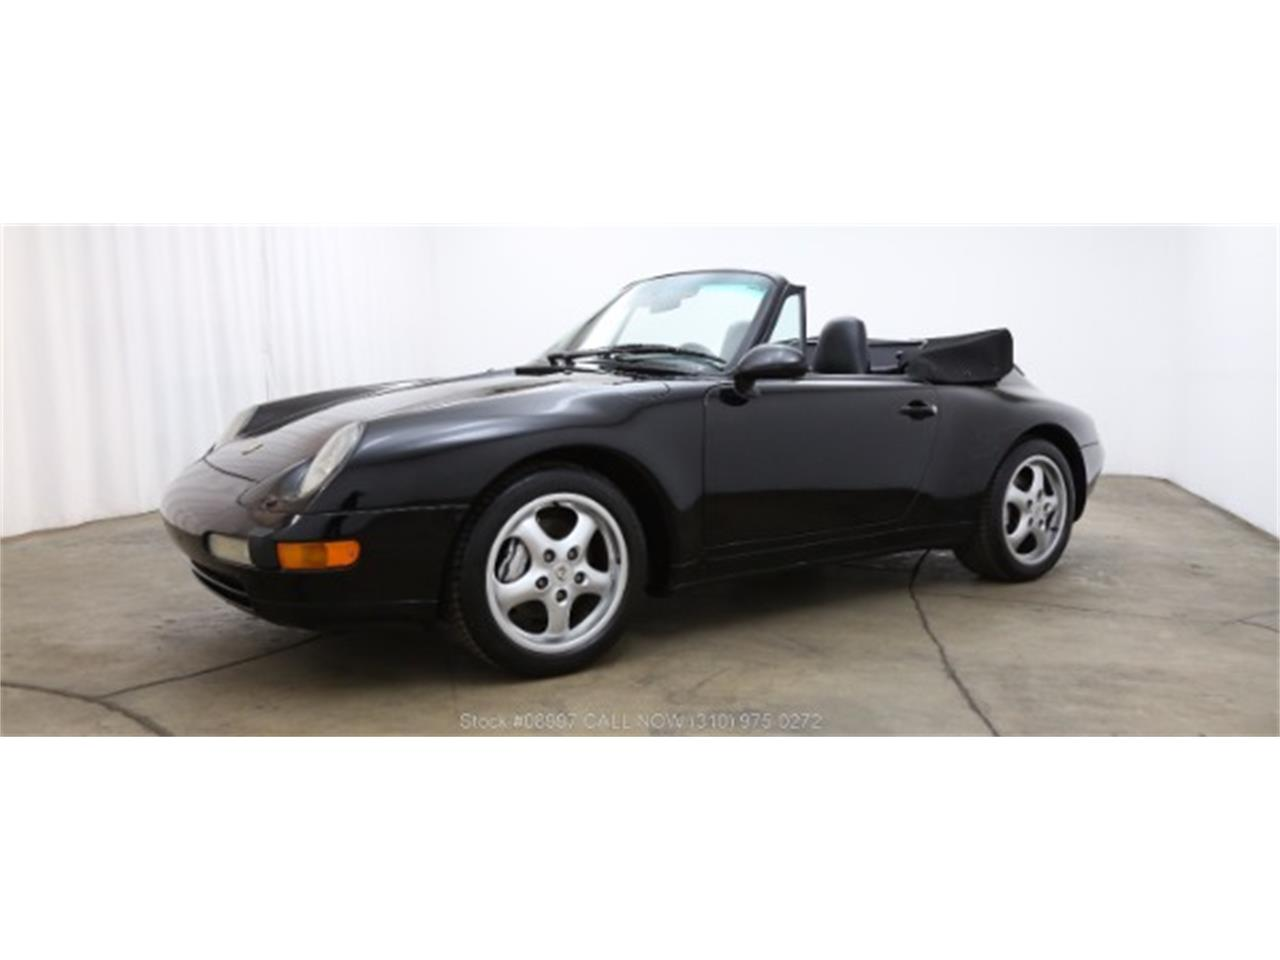 Large Picture of 1995 Porsche 993 located in California - $46,500.00 - MCNT